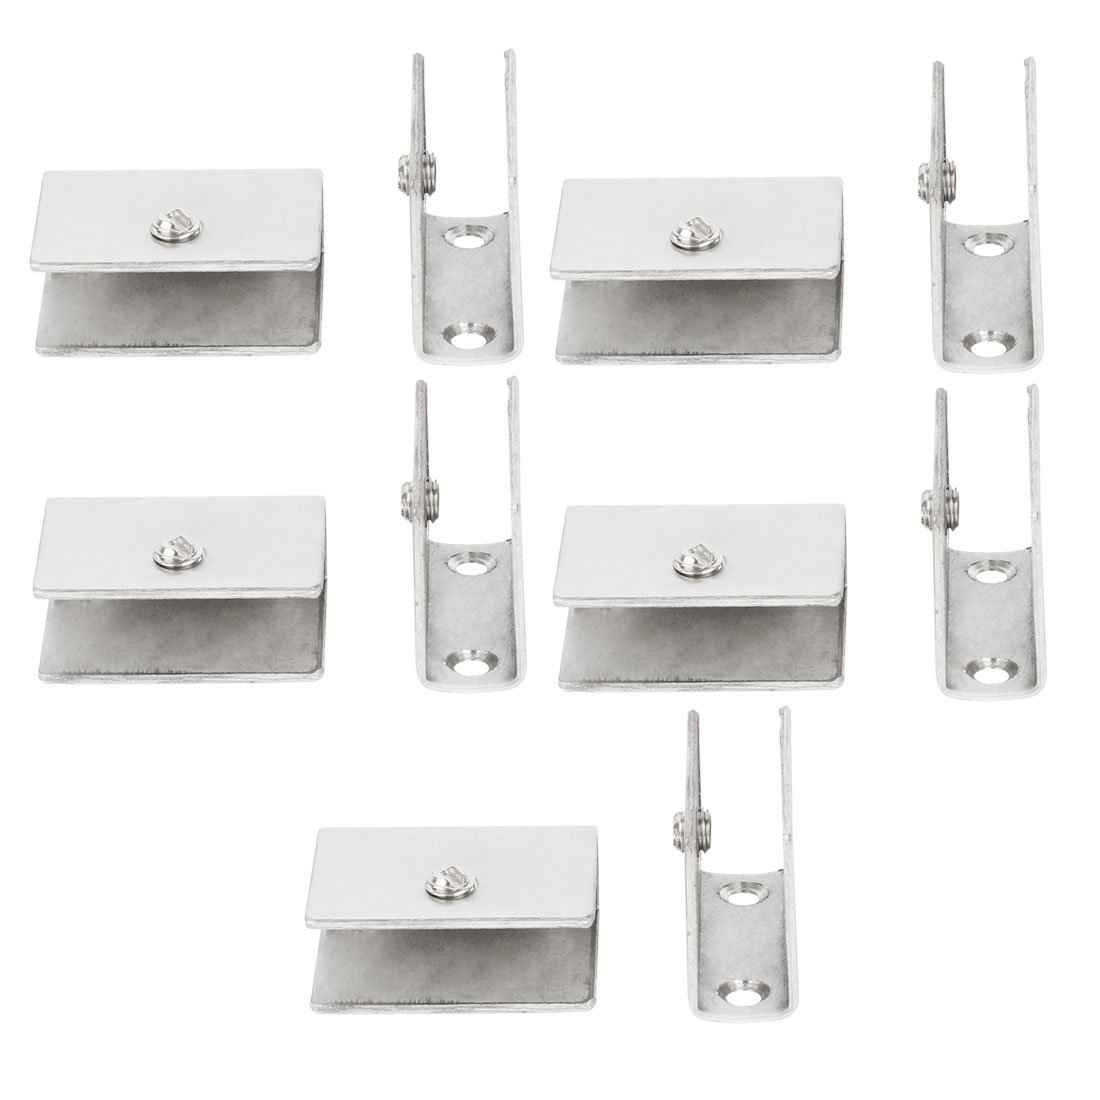 uxcell Office Adjustable Guardrail Door Glass Shelf Clamp Brackets Clips Holder Support 10pcs